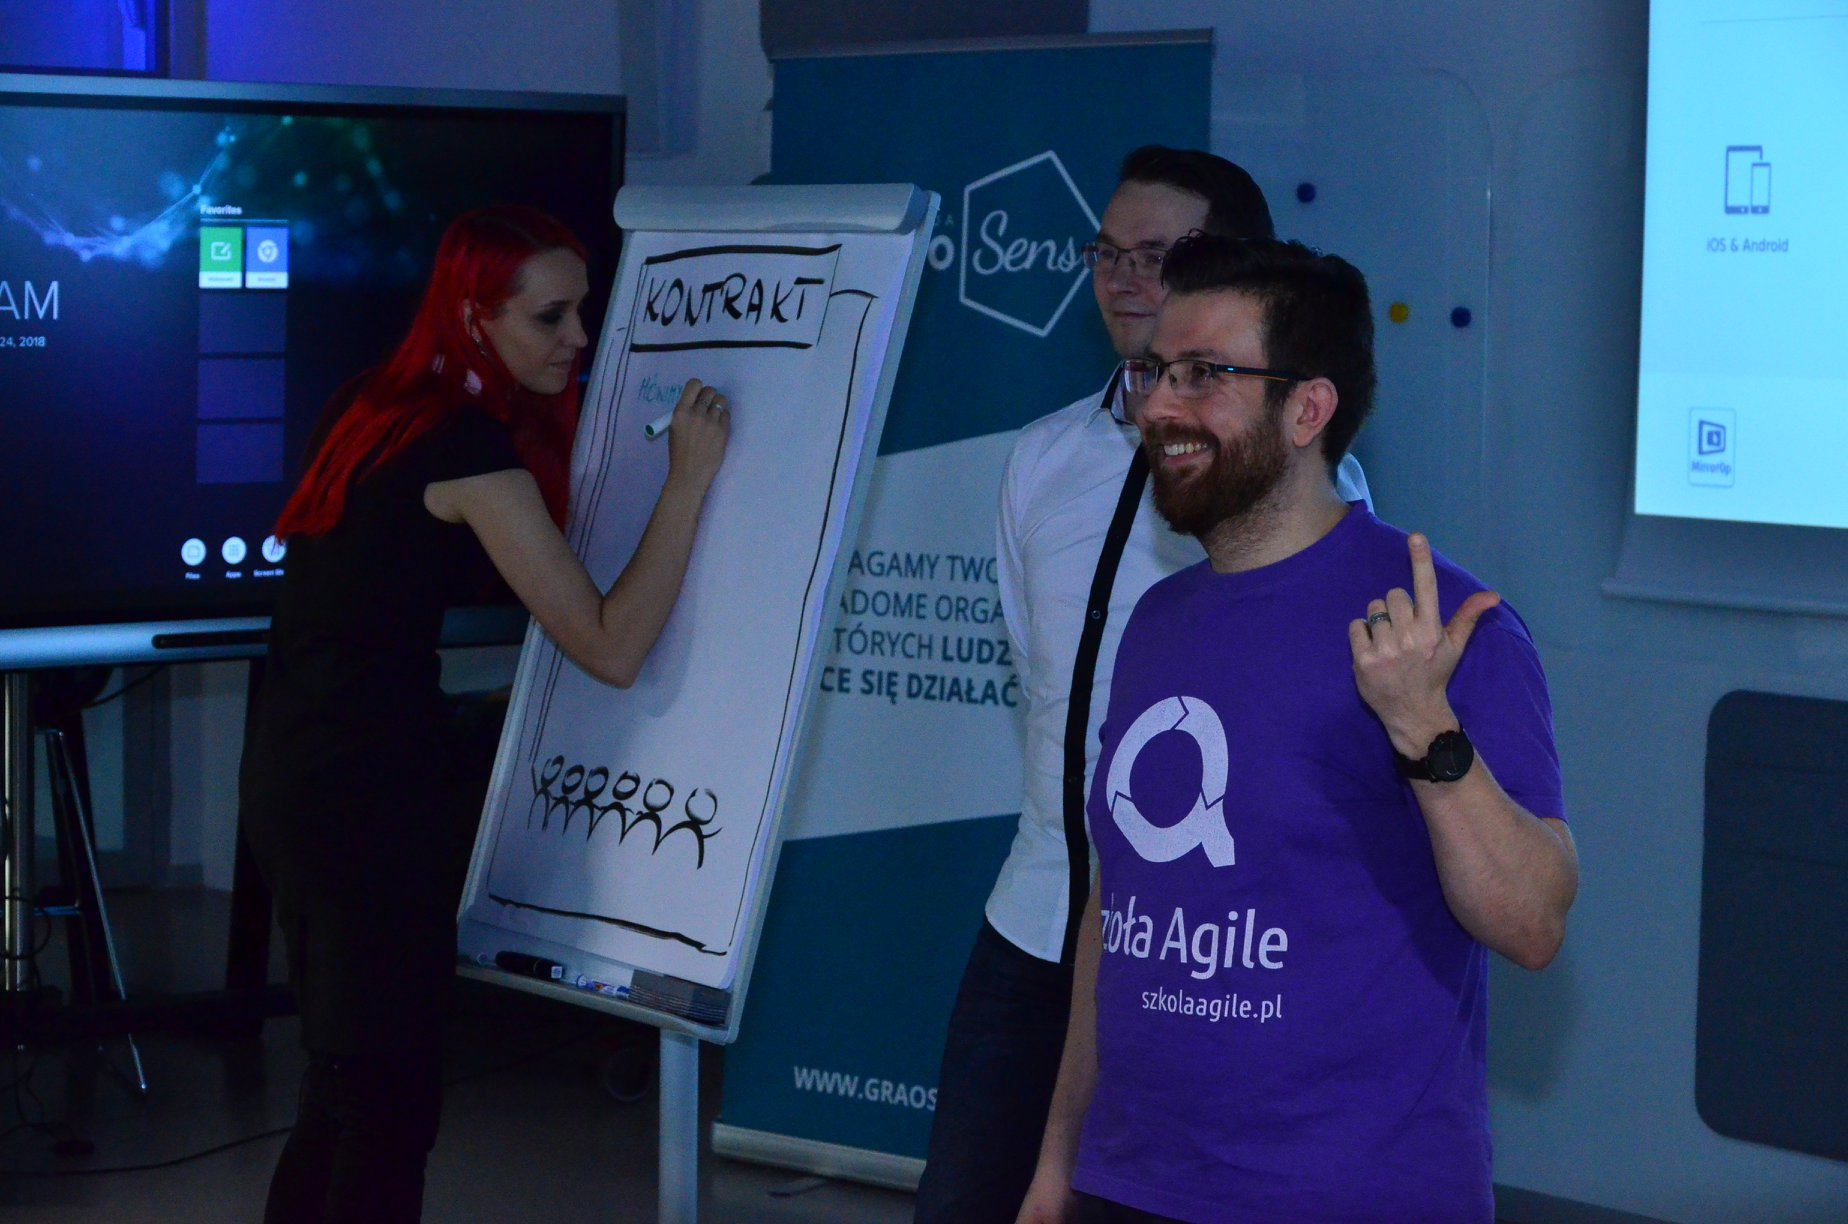 Let's be Agile! - 46762885 600331703750583 2355252824087986176 o